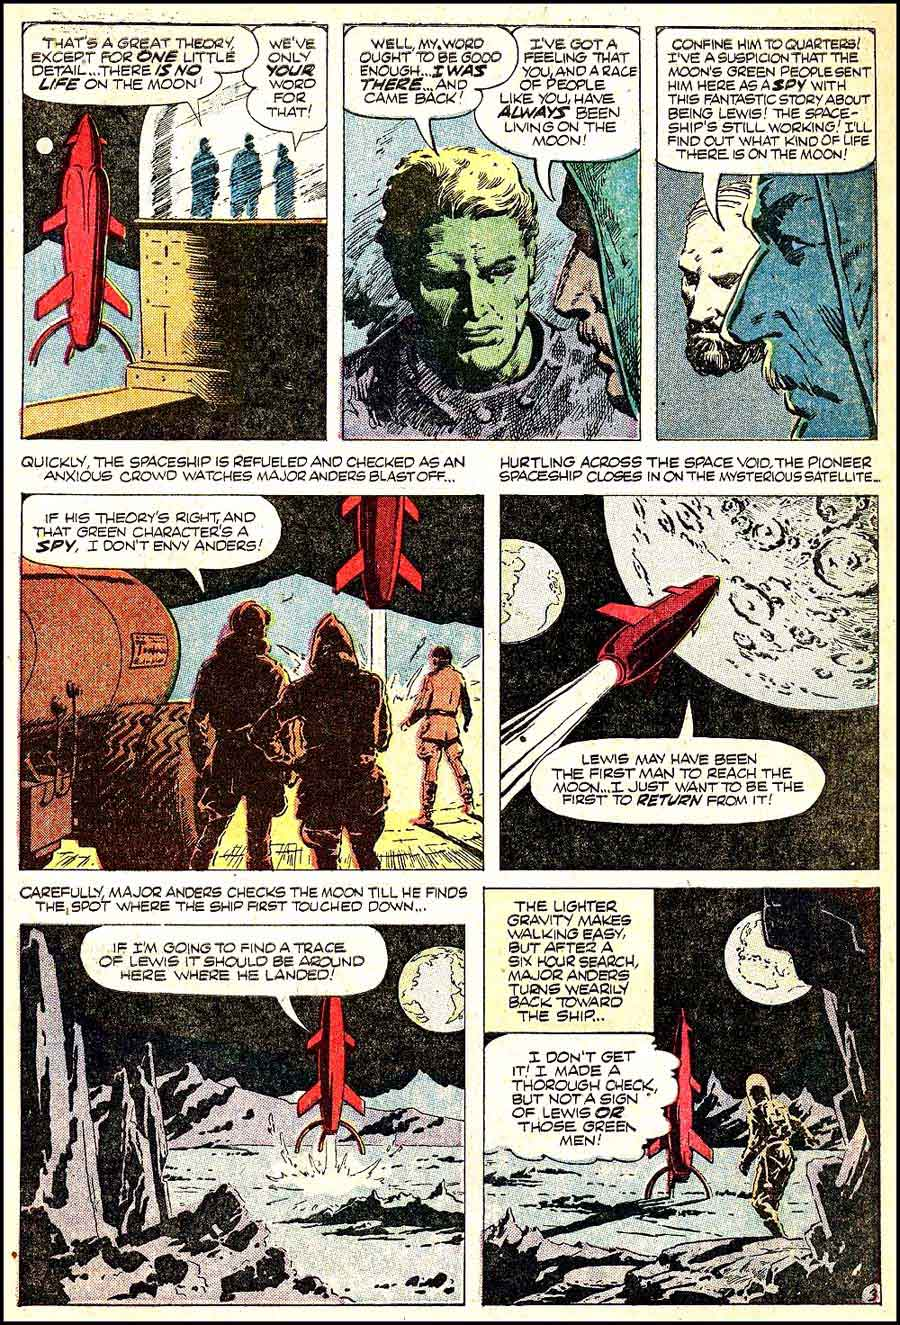 World of Suspense v1 #3 atlas comic book page art by Al Williamson